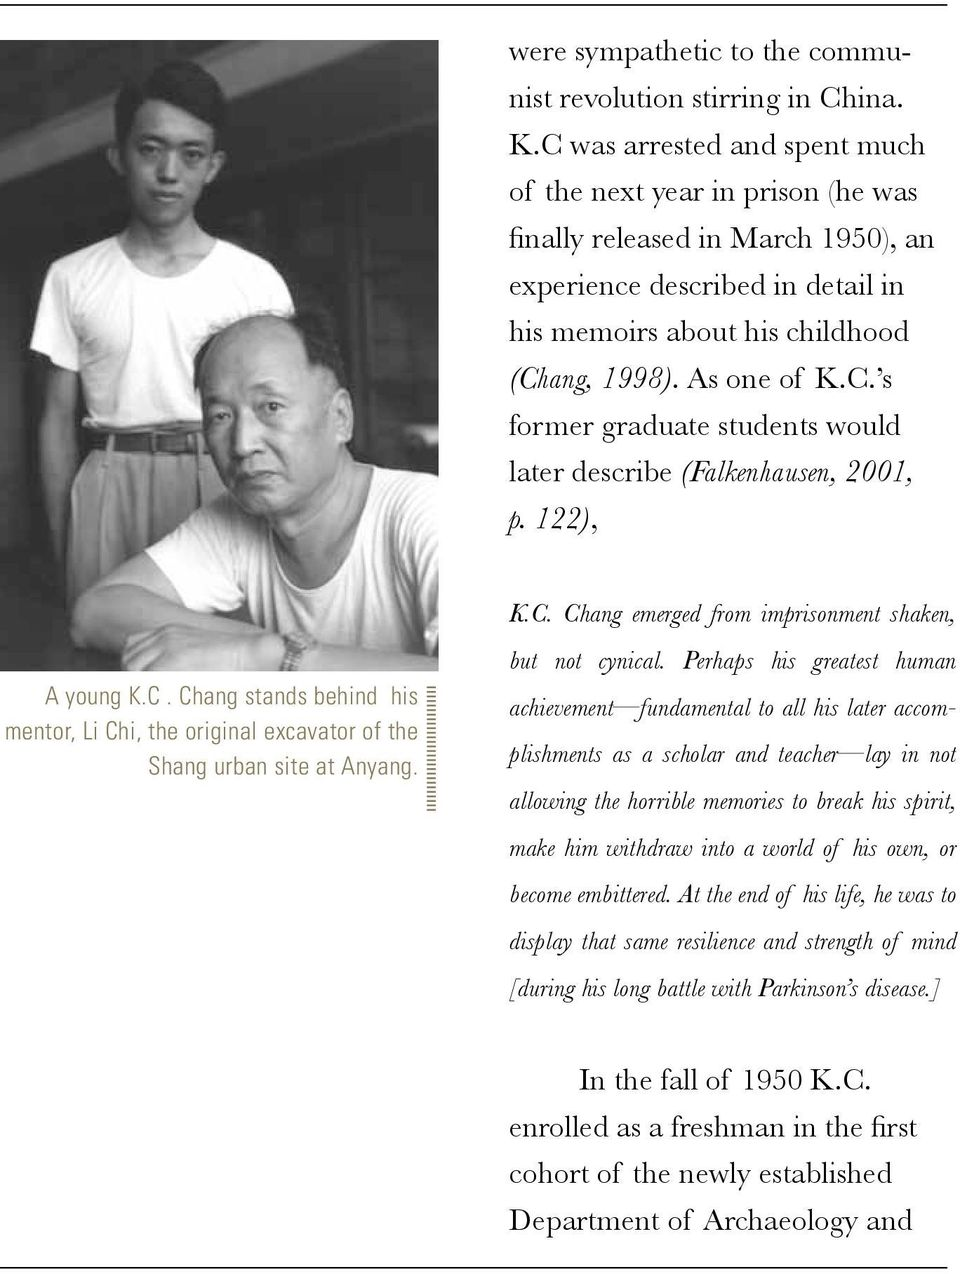 122), A young K.C. Chang stands behind his mentor, Li Chi, the original excavator of the Shang urban site at Anyang. K.C. Chang emerged from imprisonment shaken, but not cynical.